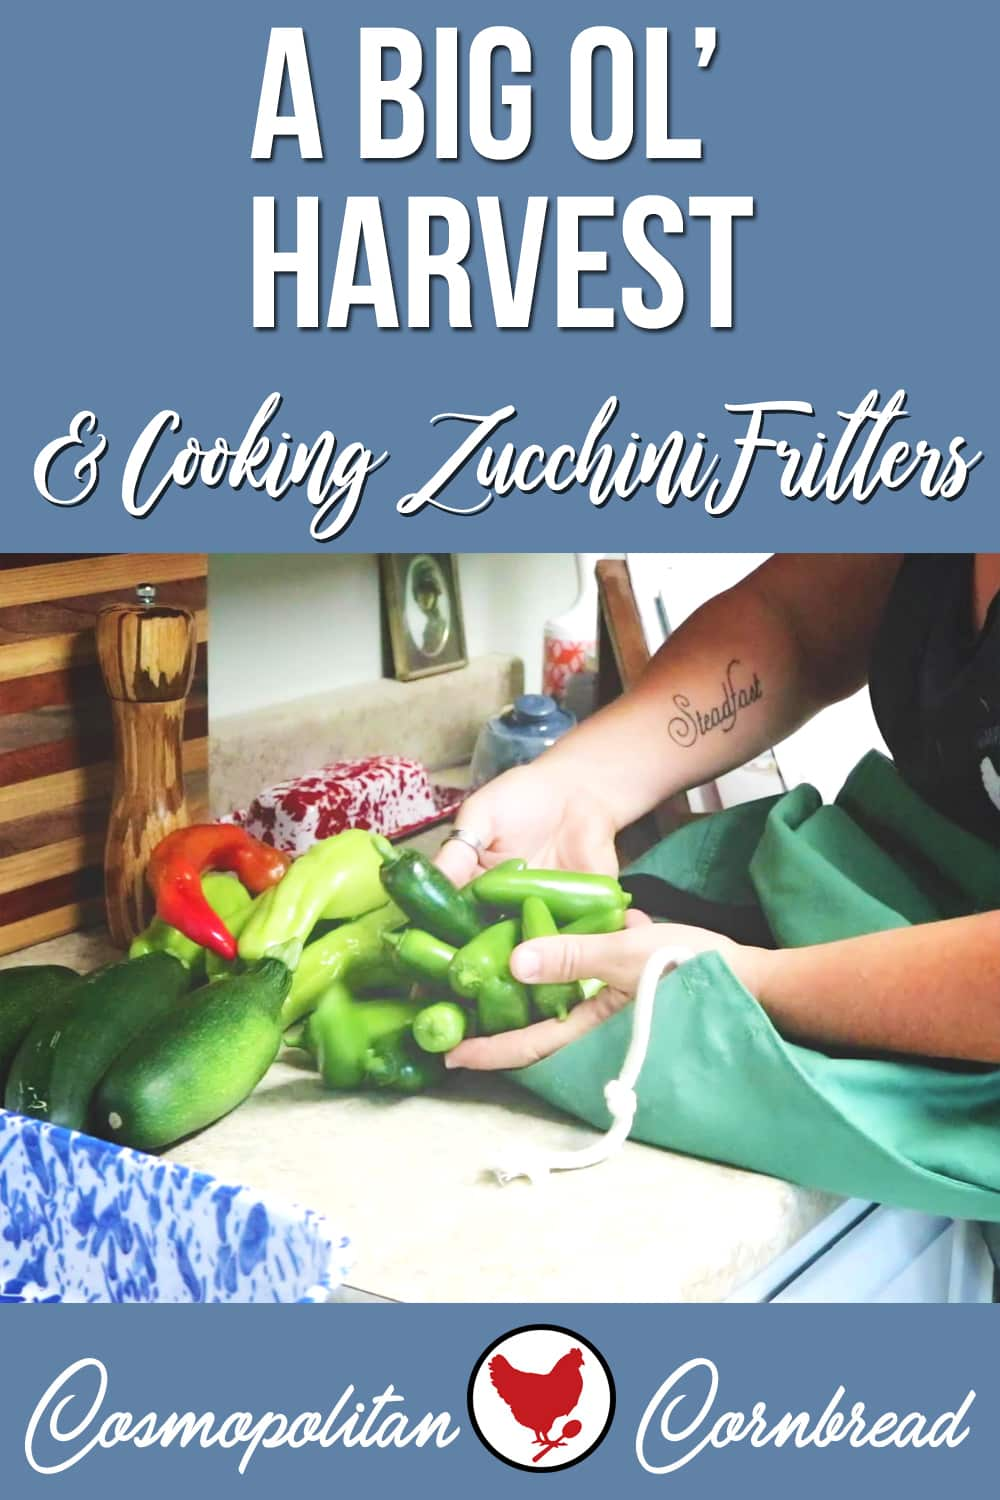 I had the biggest harvest of the garden so far, including three more zucchini. So I made some zucchini fritters and showed you how. YUM!